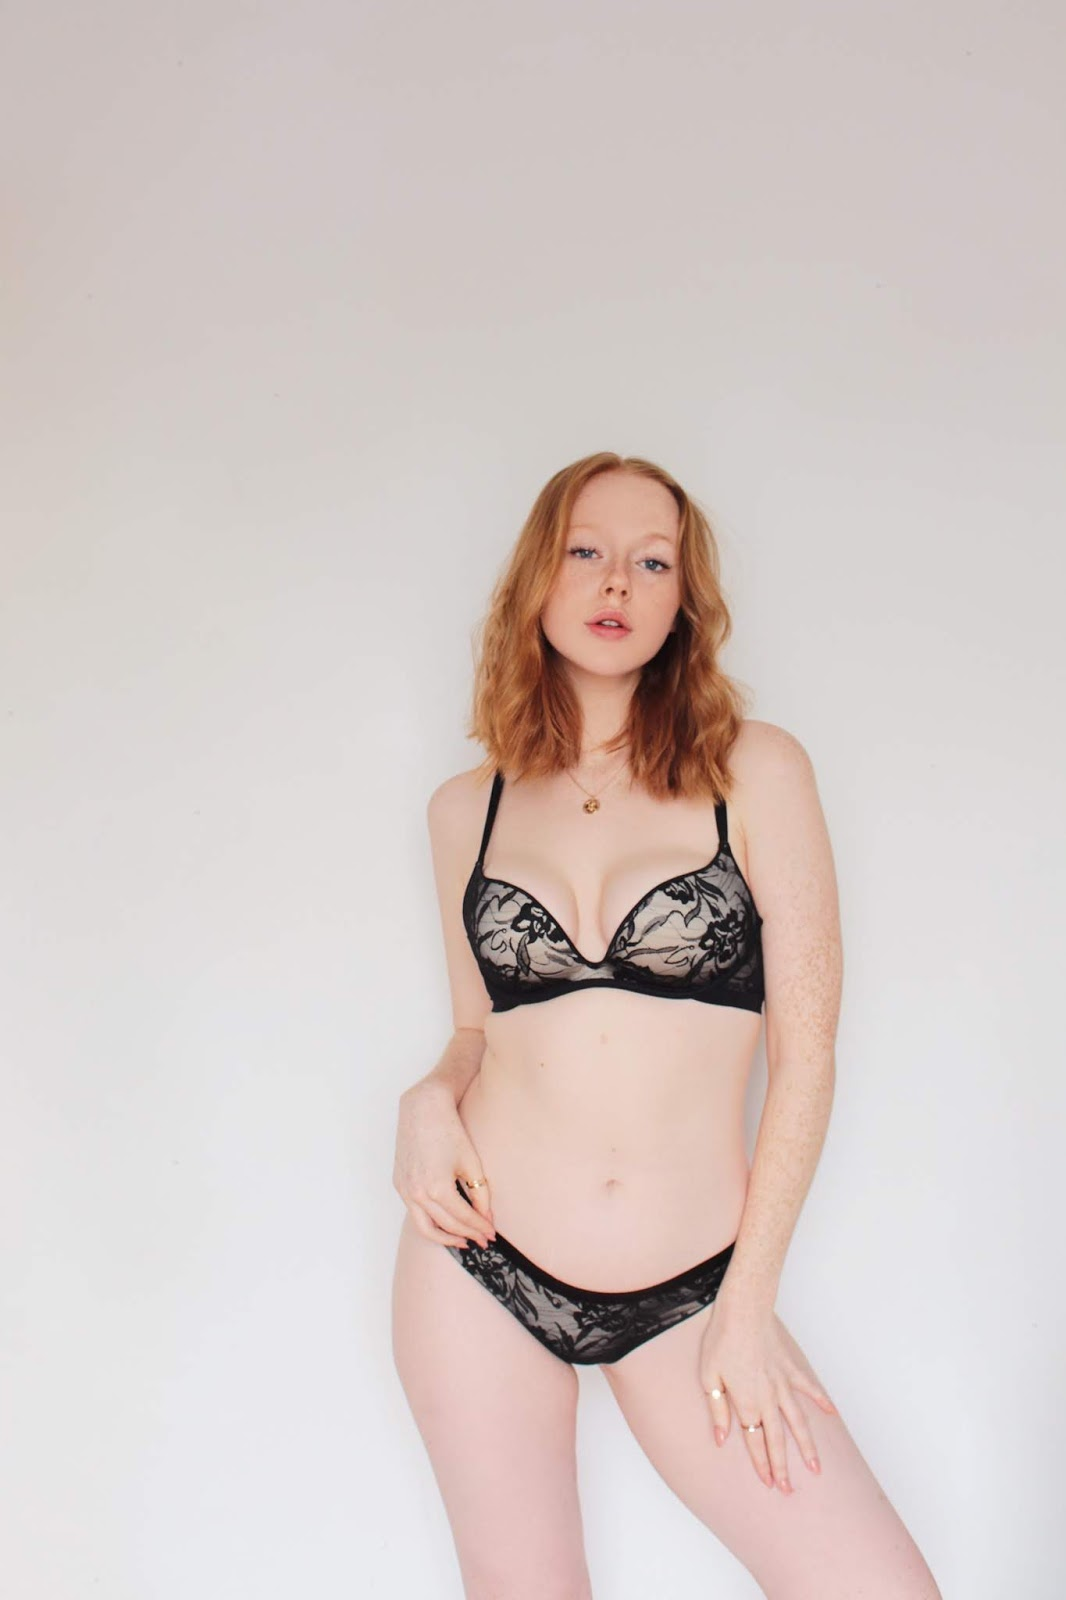 e1cb27835d0a If you're a lover of lingerie simply for yourself, or whether you're  looking to slip into something slinky for your significant other, I have  got the brand ...